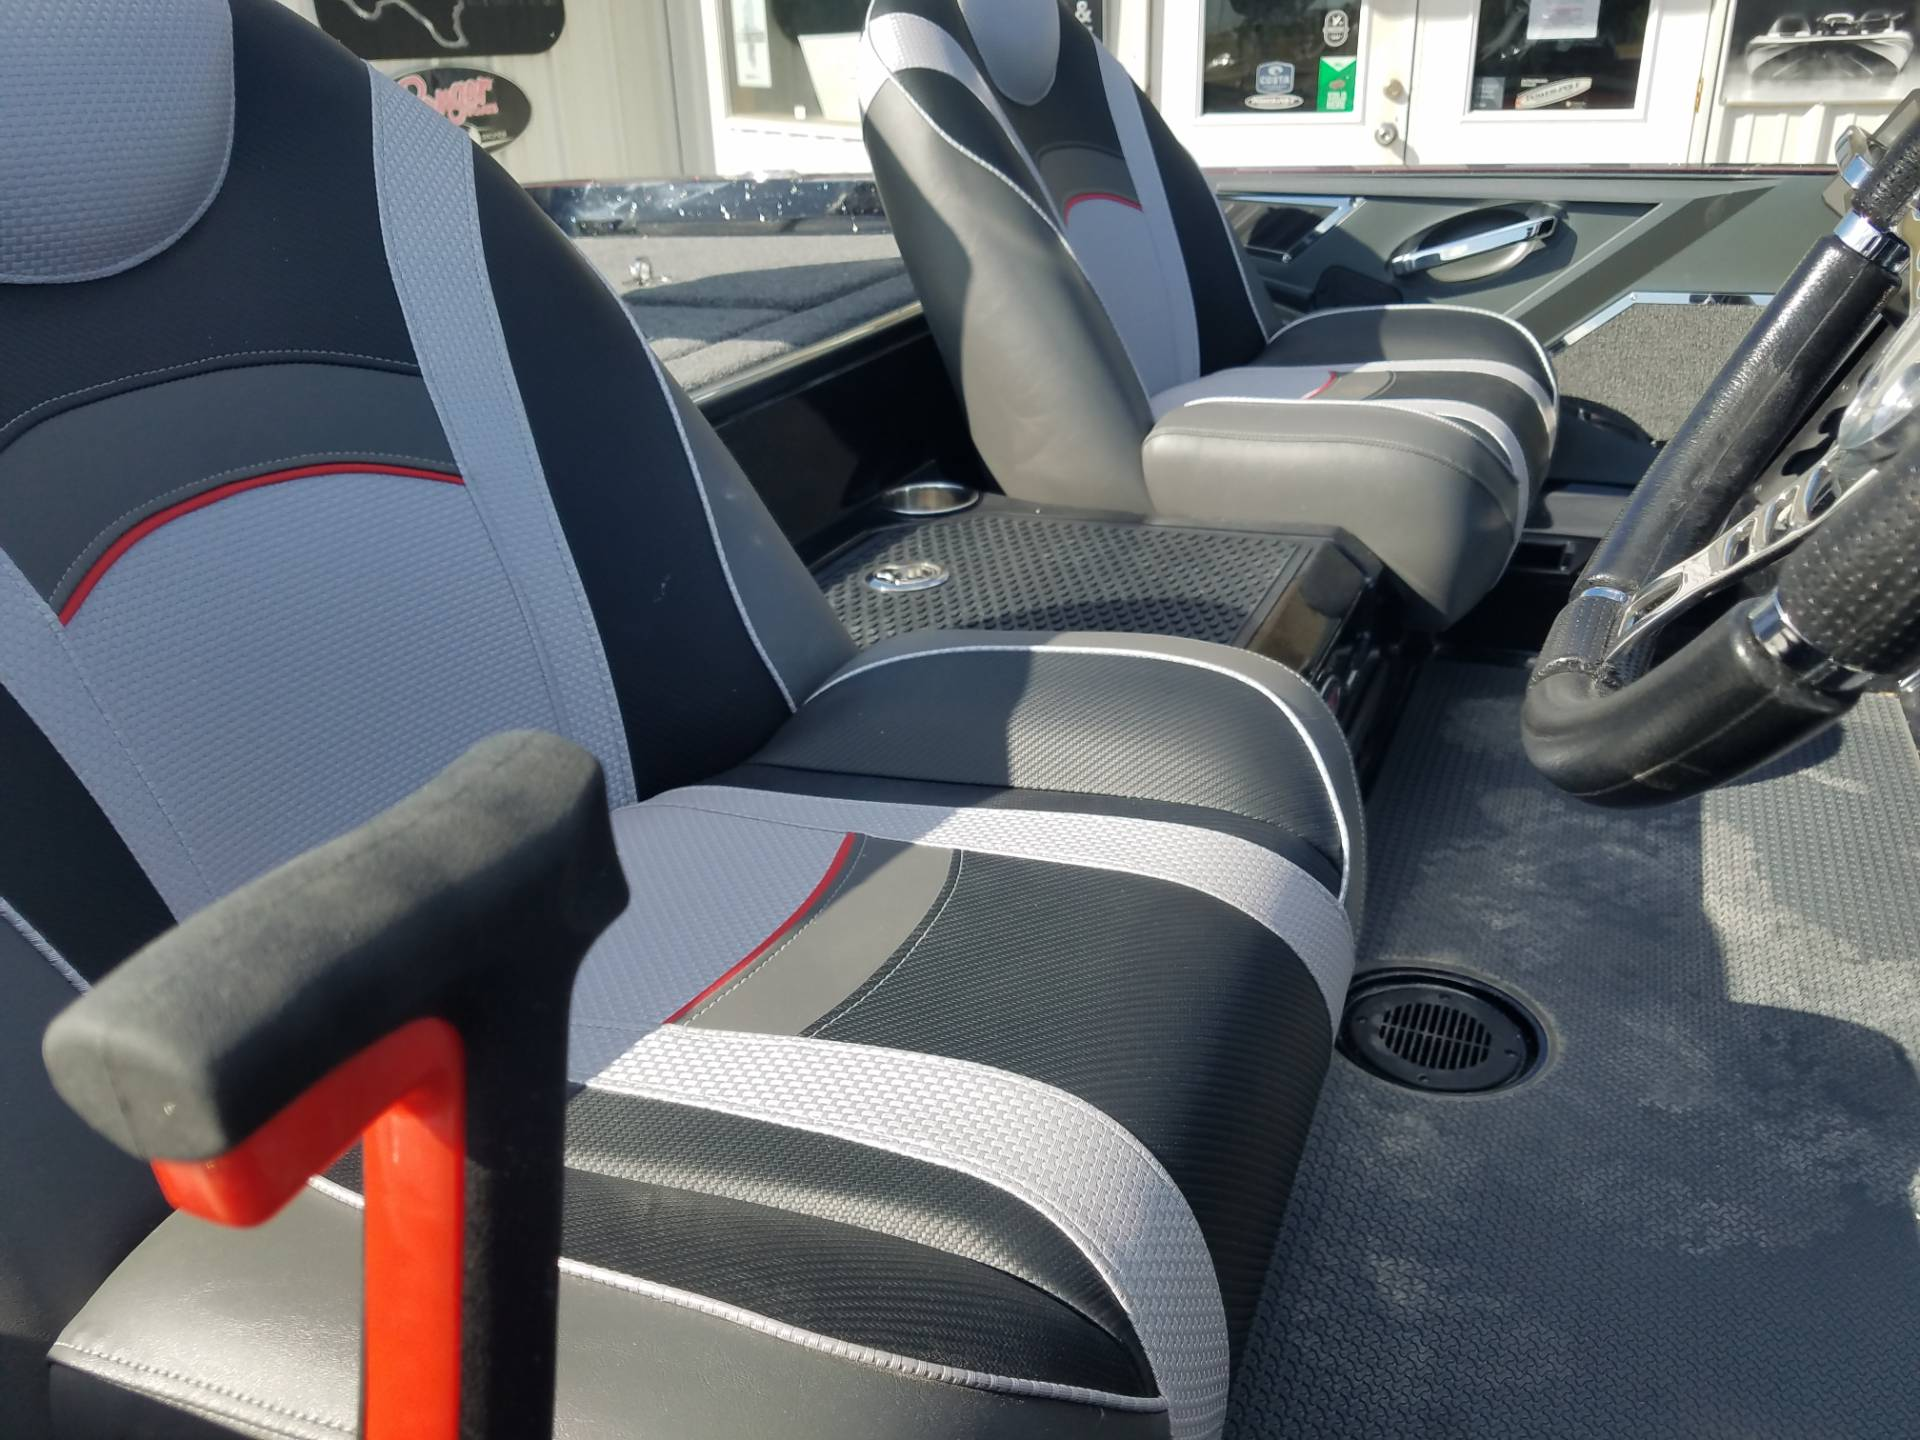 2021 Ranger Z520L Touring Package w/ Dual Pro Charger in Eastland, Texas - Photo 10